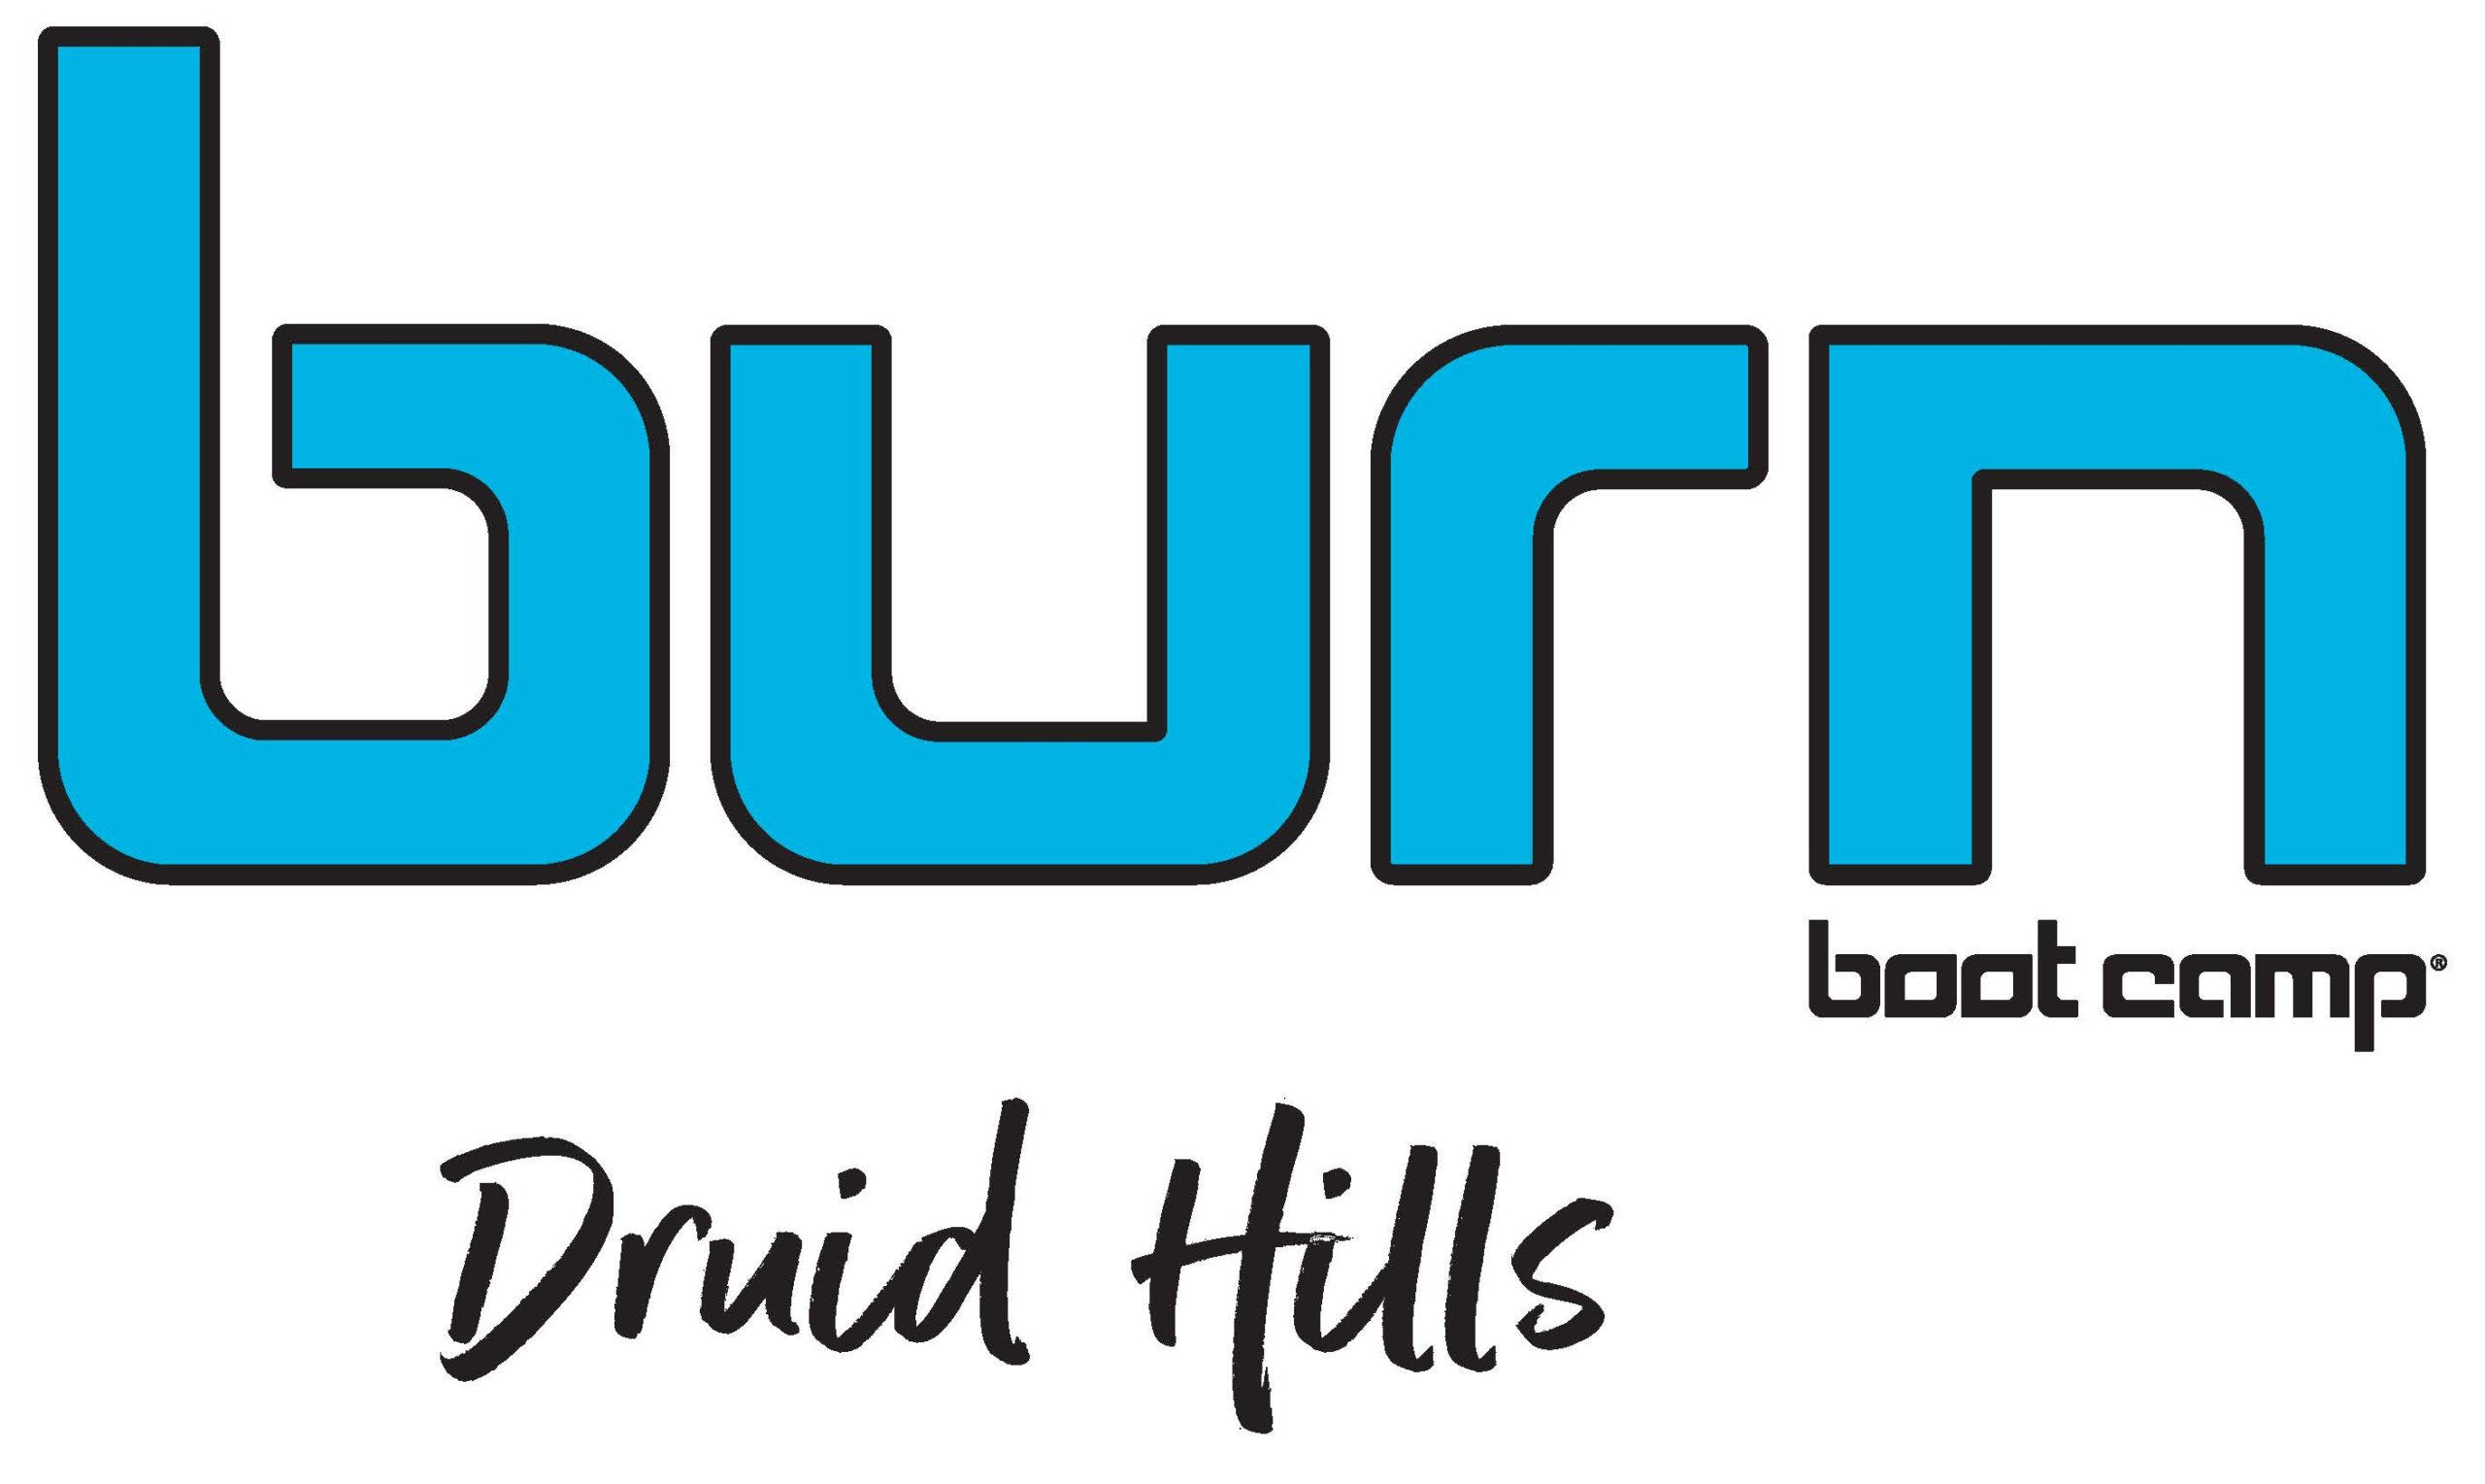 Burn-Druid-Hills-Logo